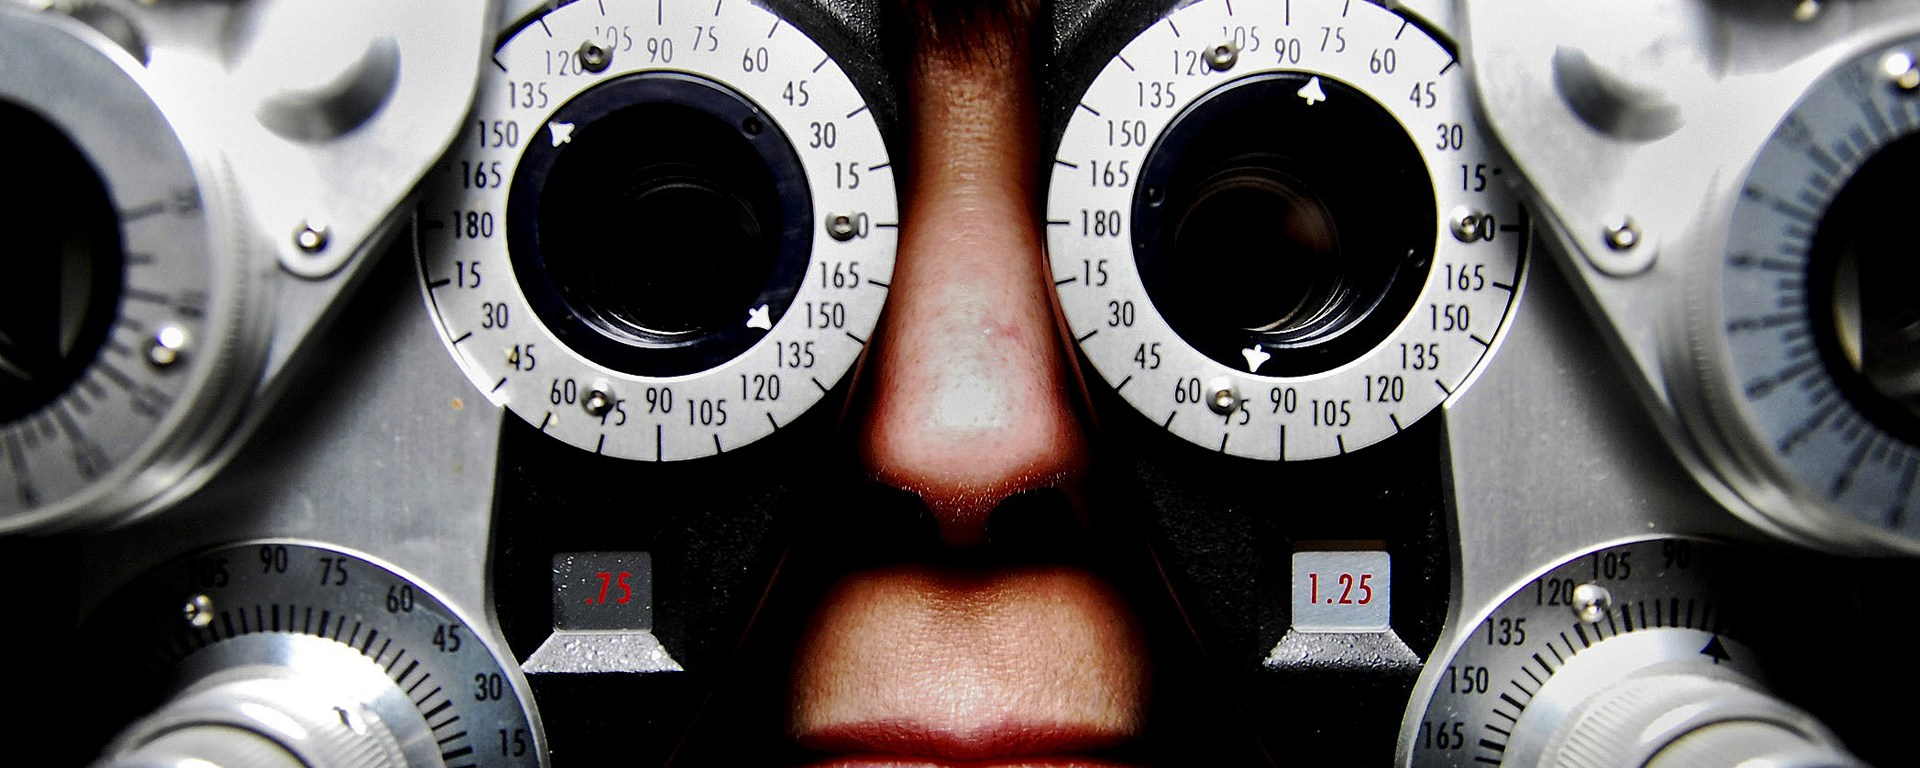 connecticut optician requirements